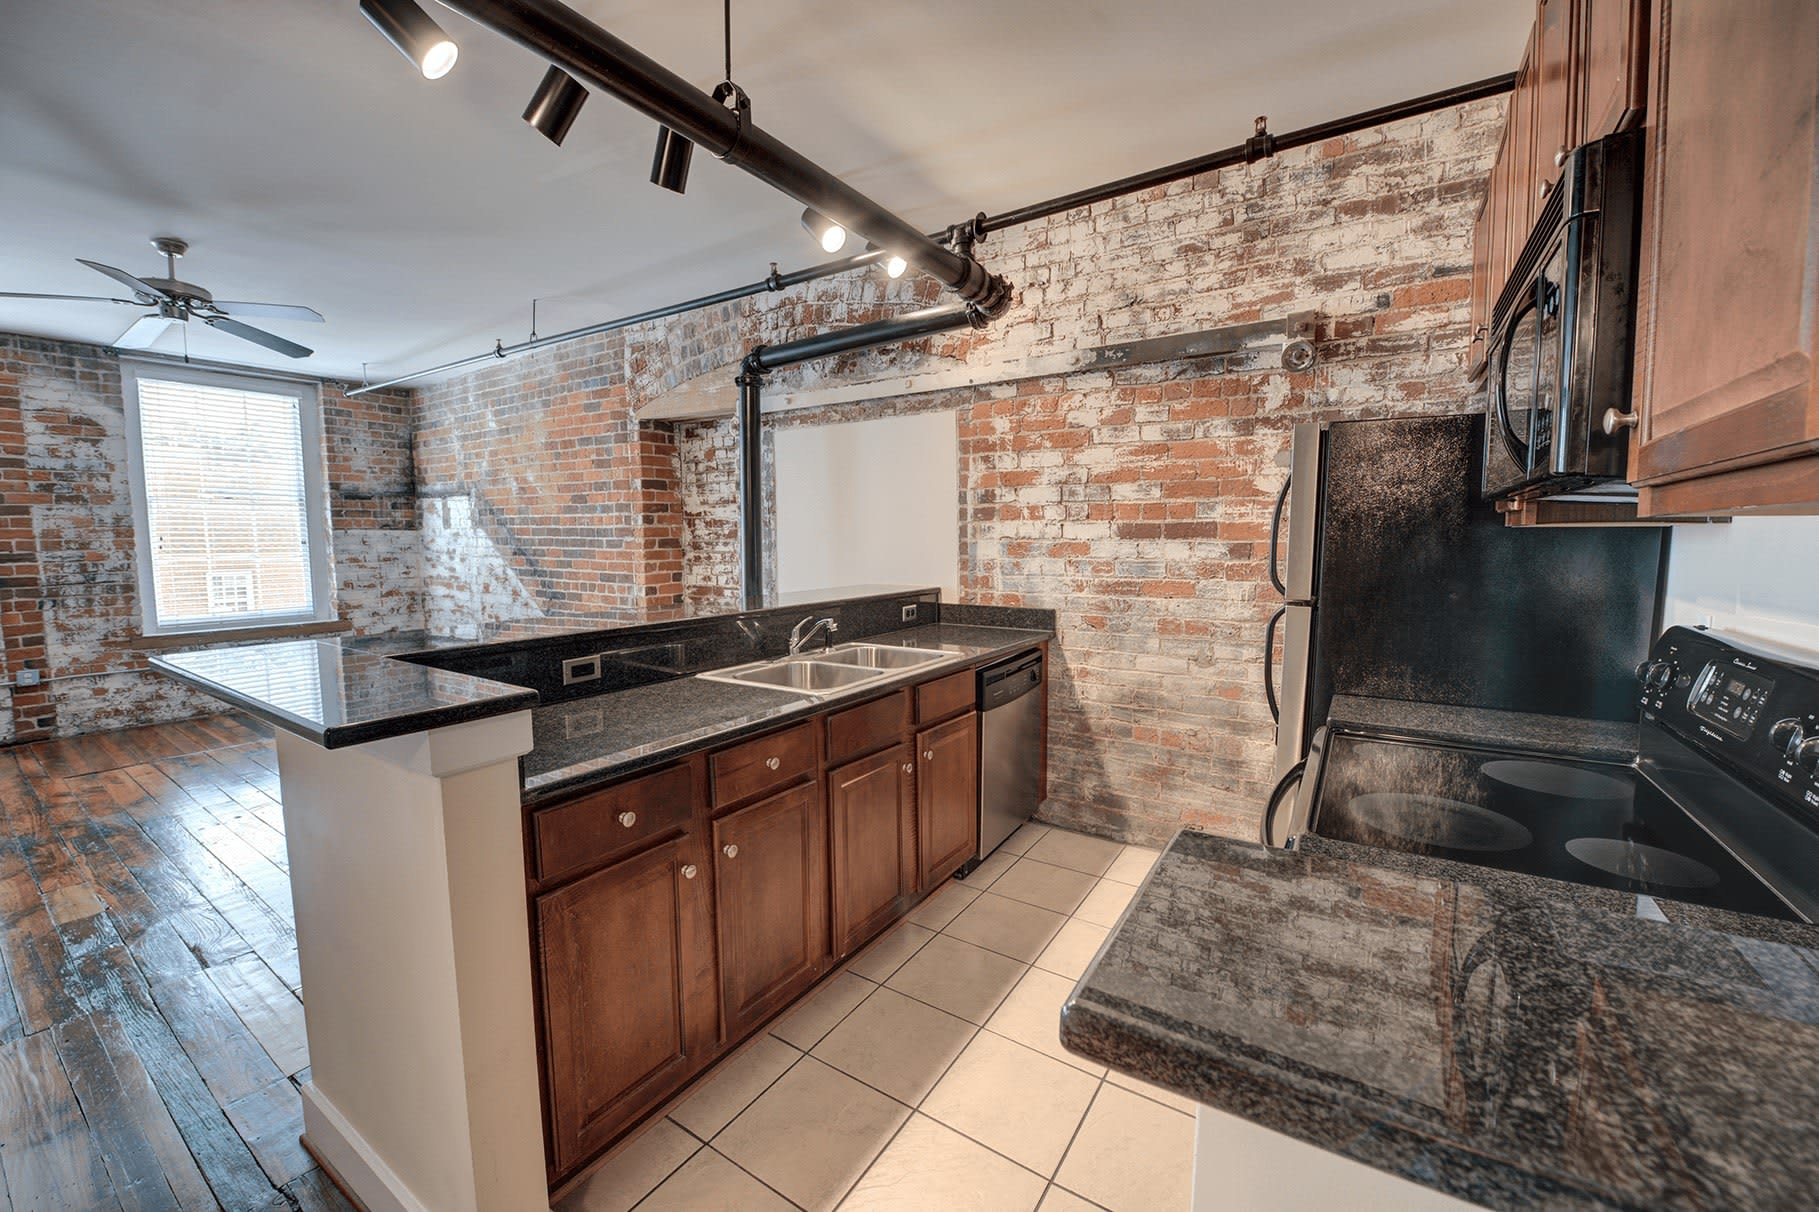 100 Best Apartments Near Vcu With Pictures